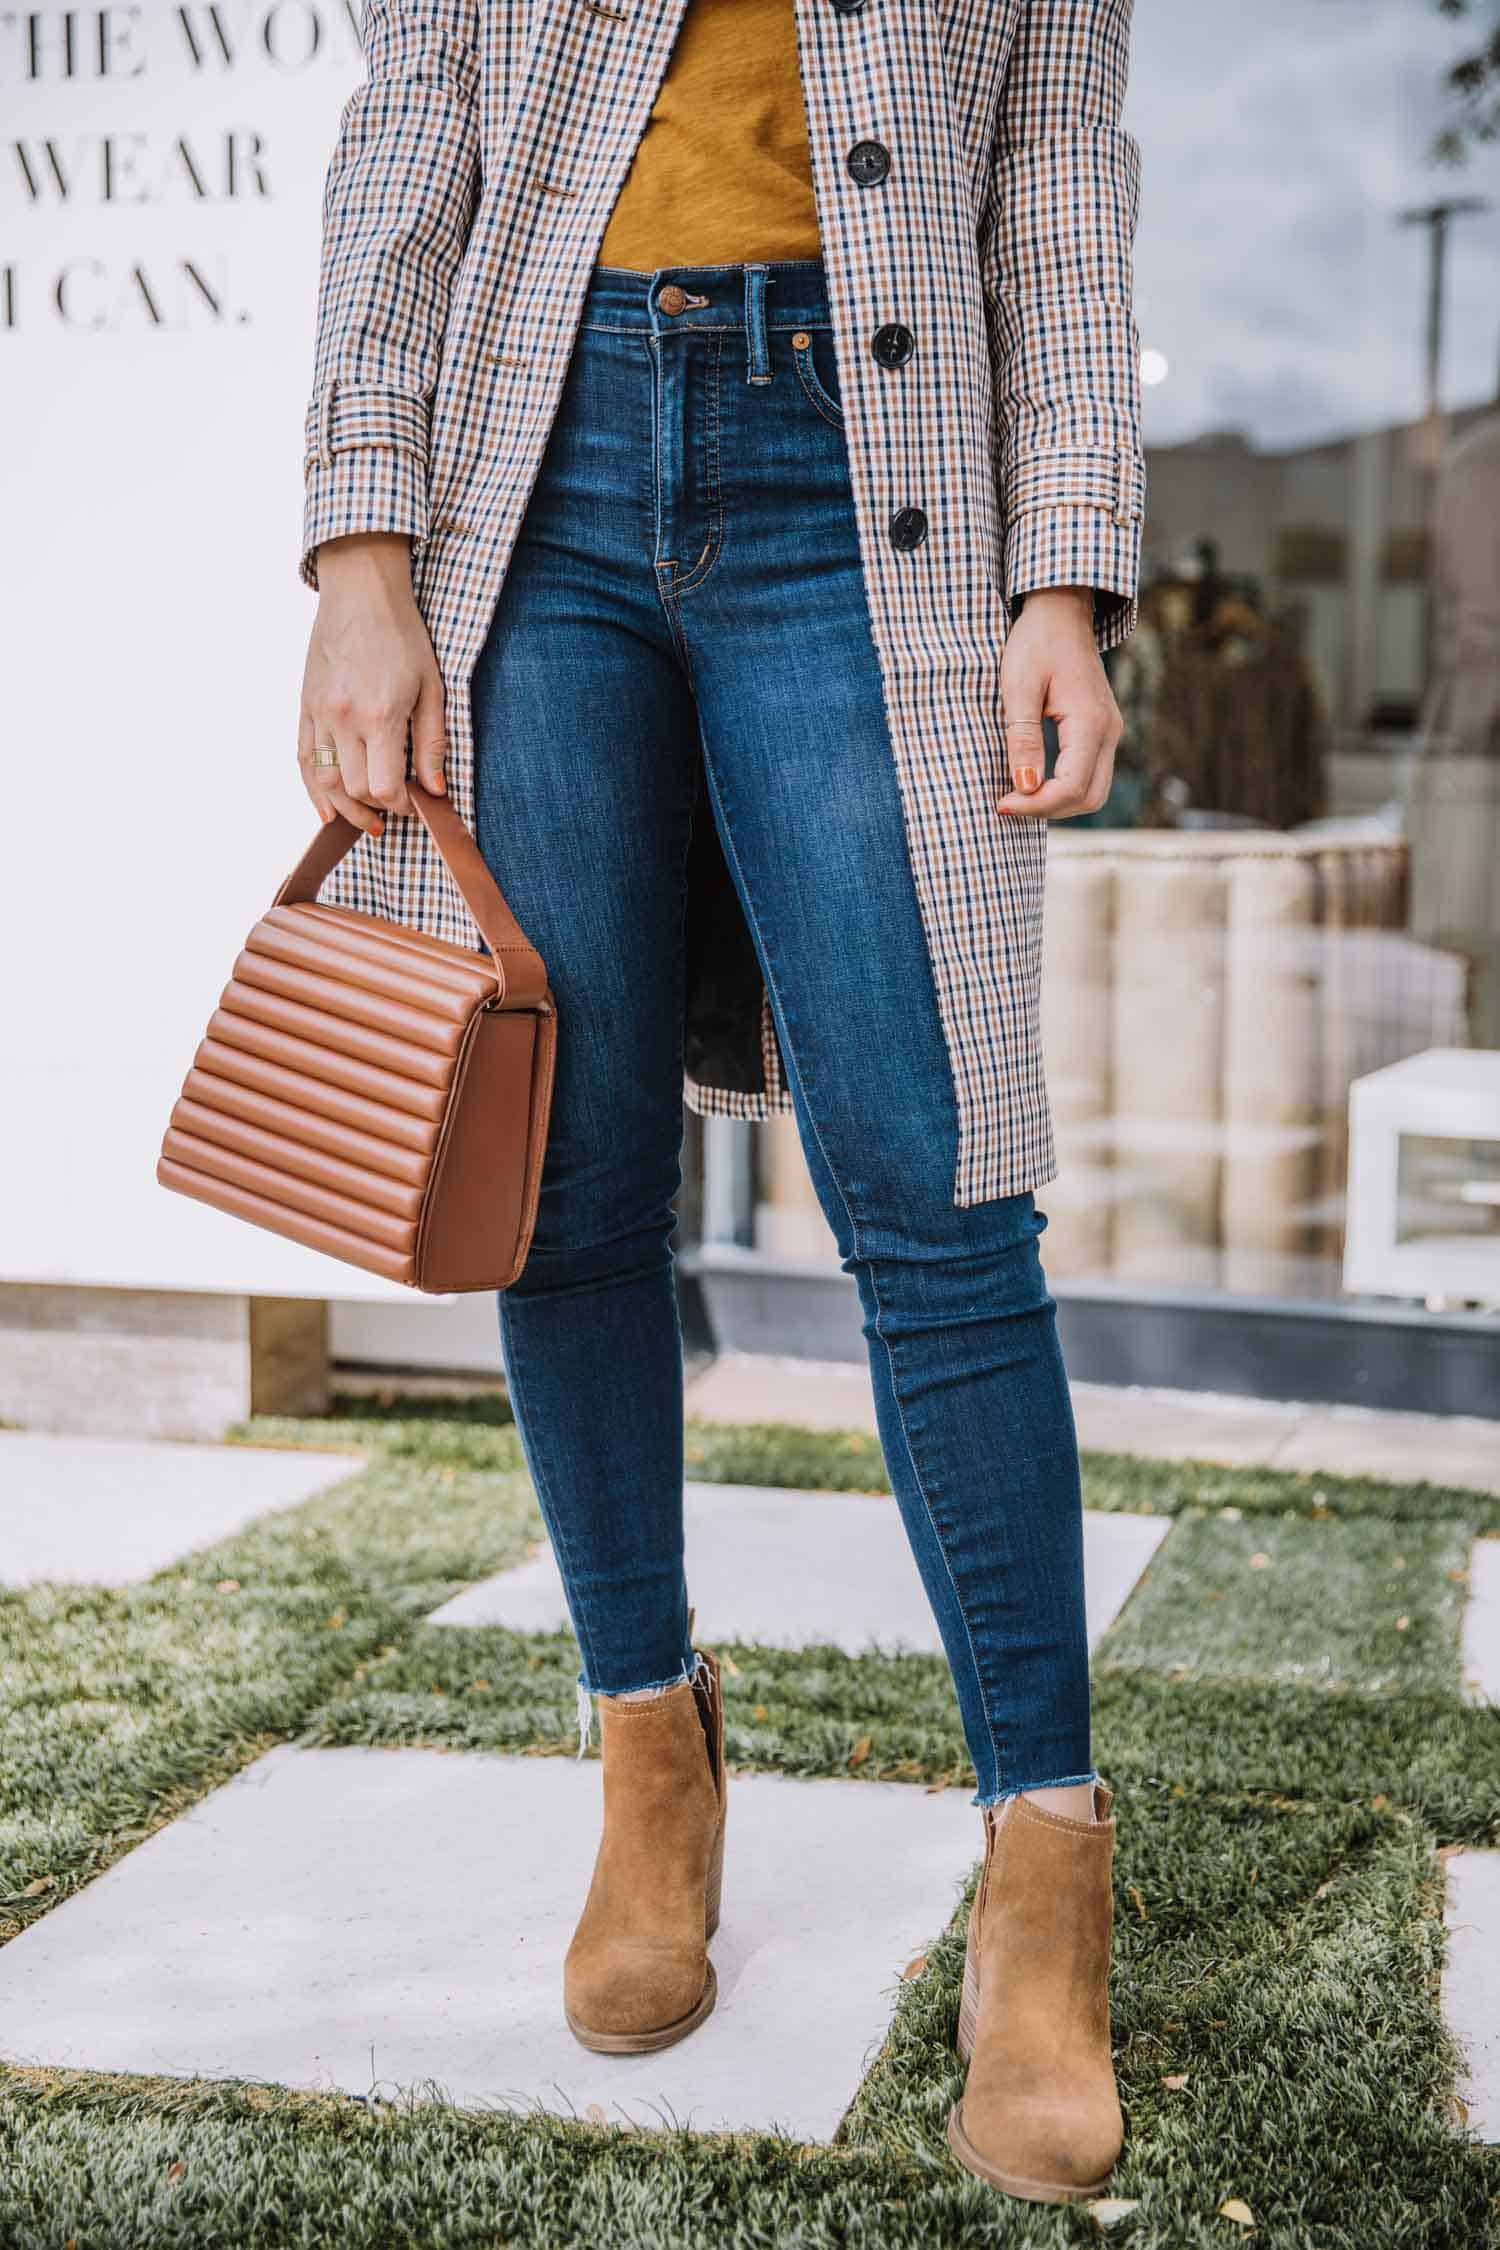 transitional outfit ideas for fall